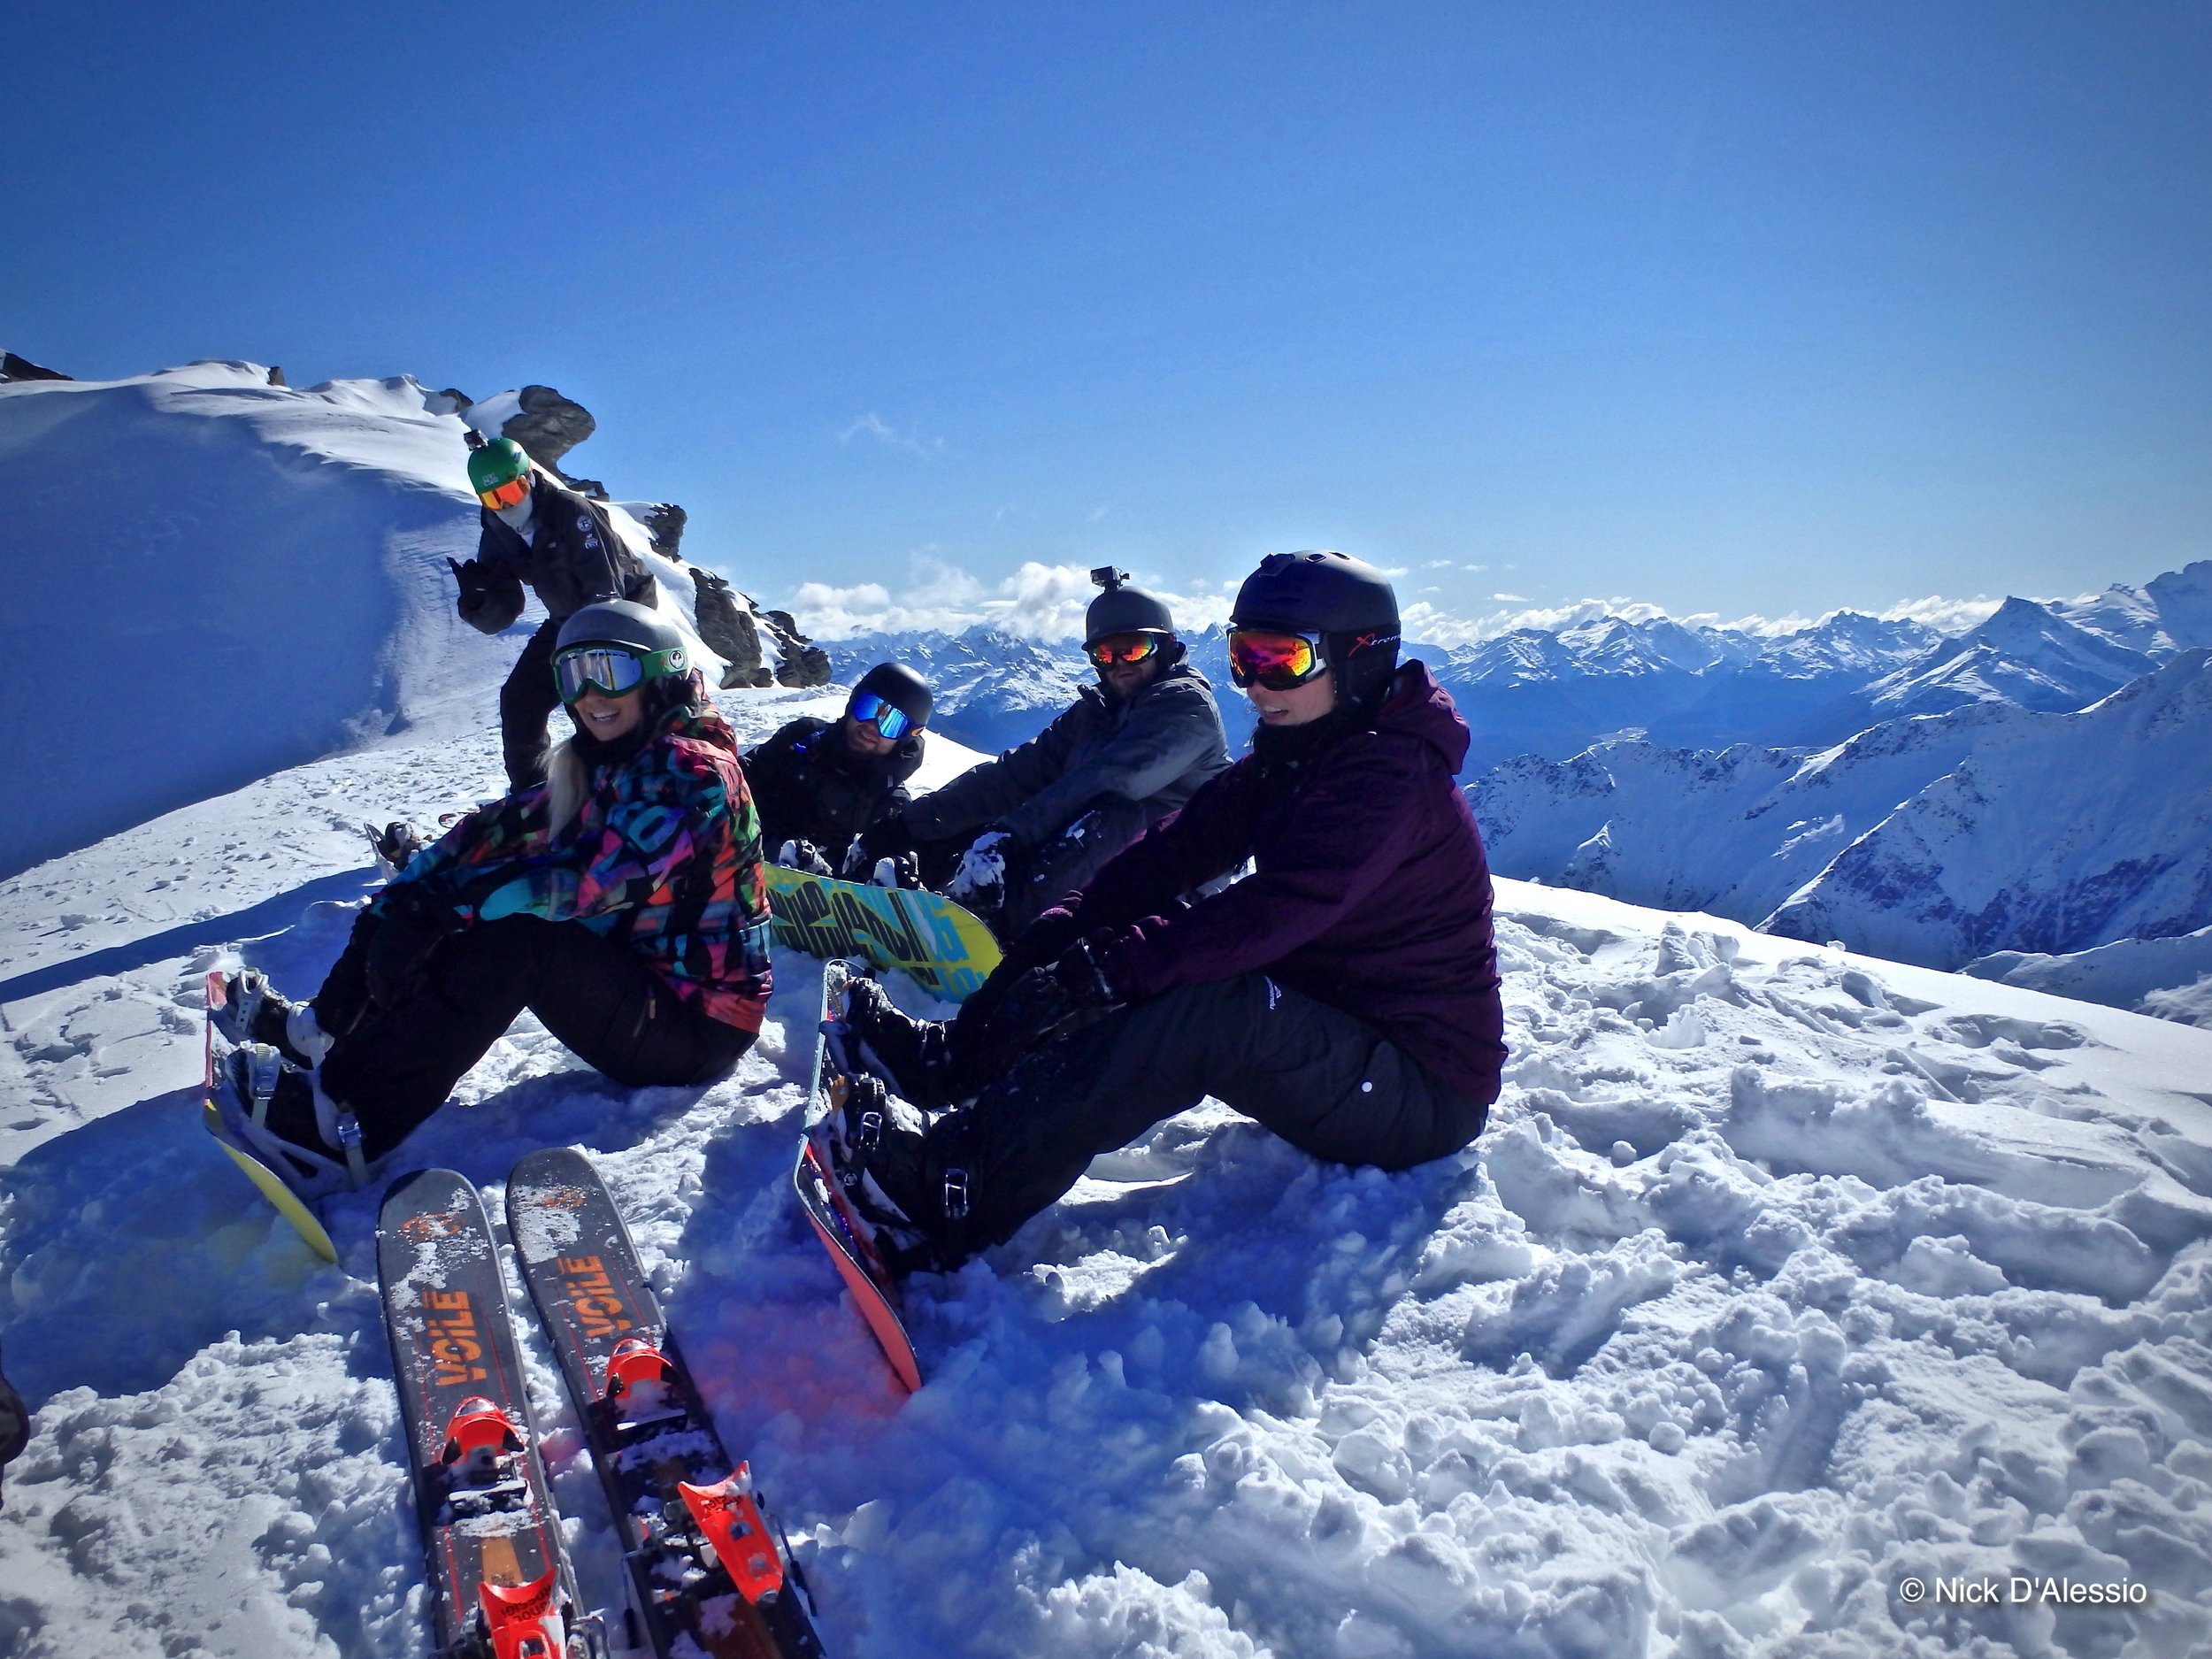 Skiing and snowboarding. Photo by Ski Guide Nick D'Alessio